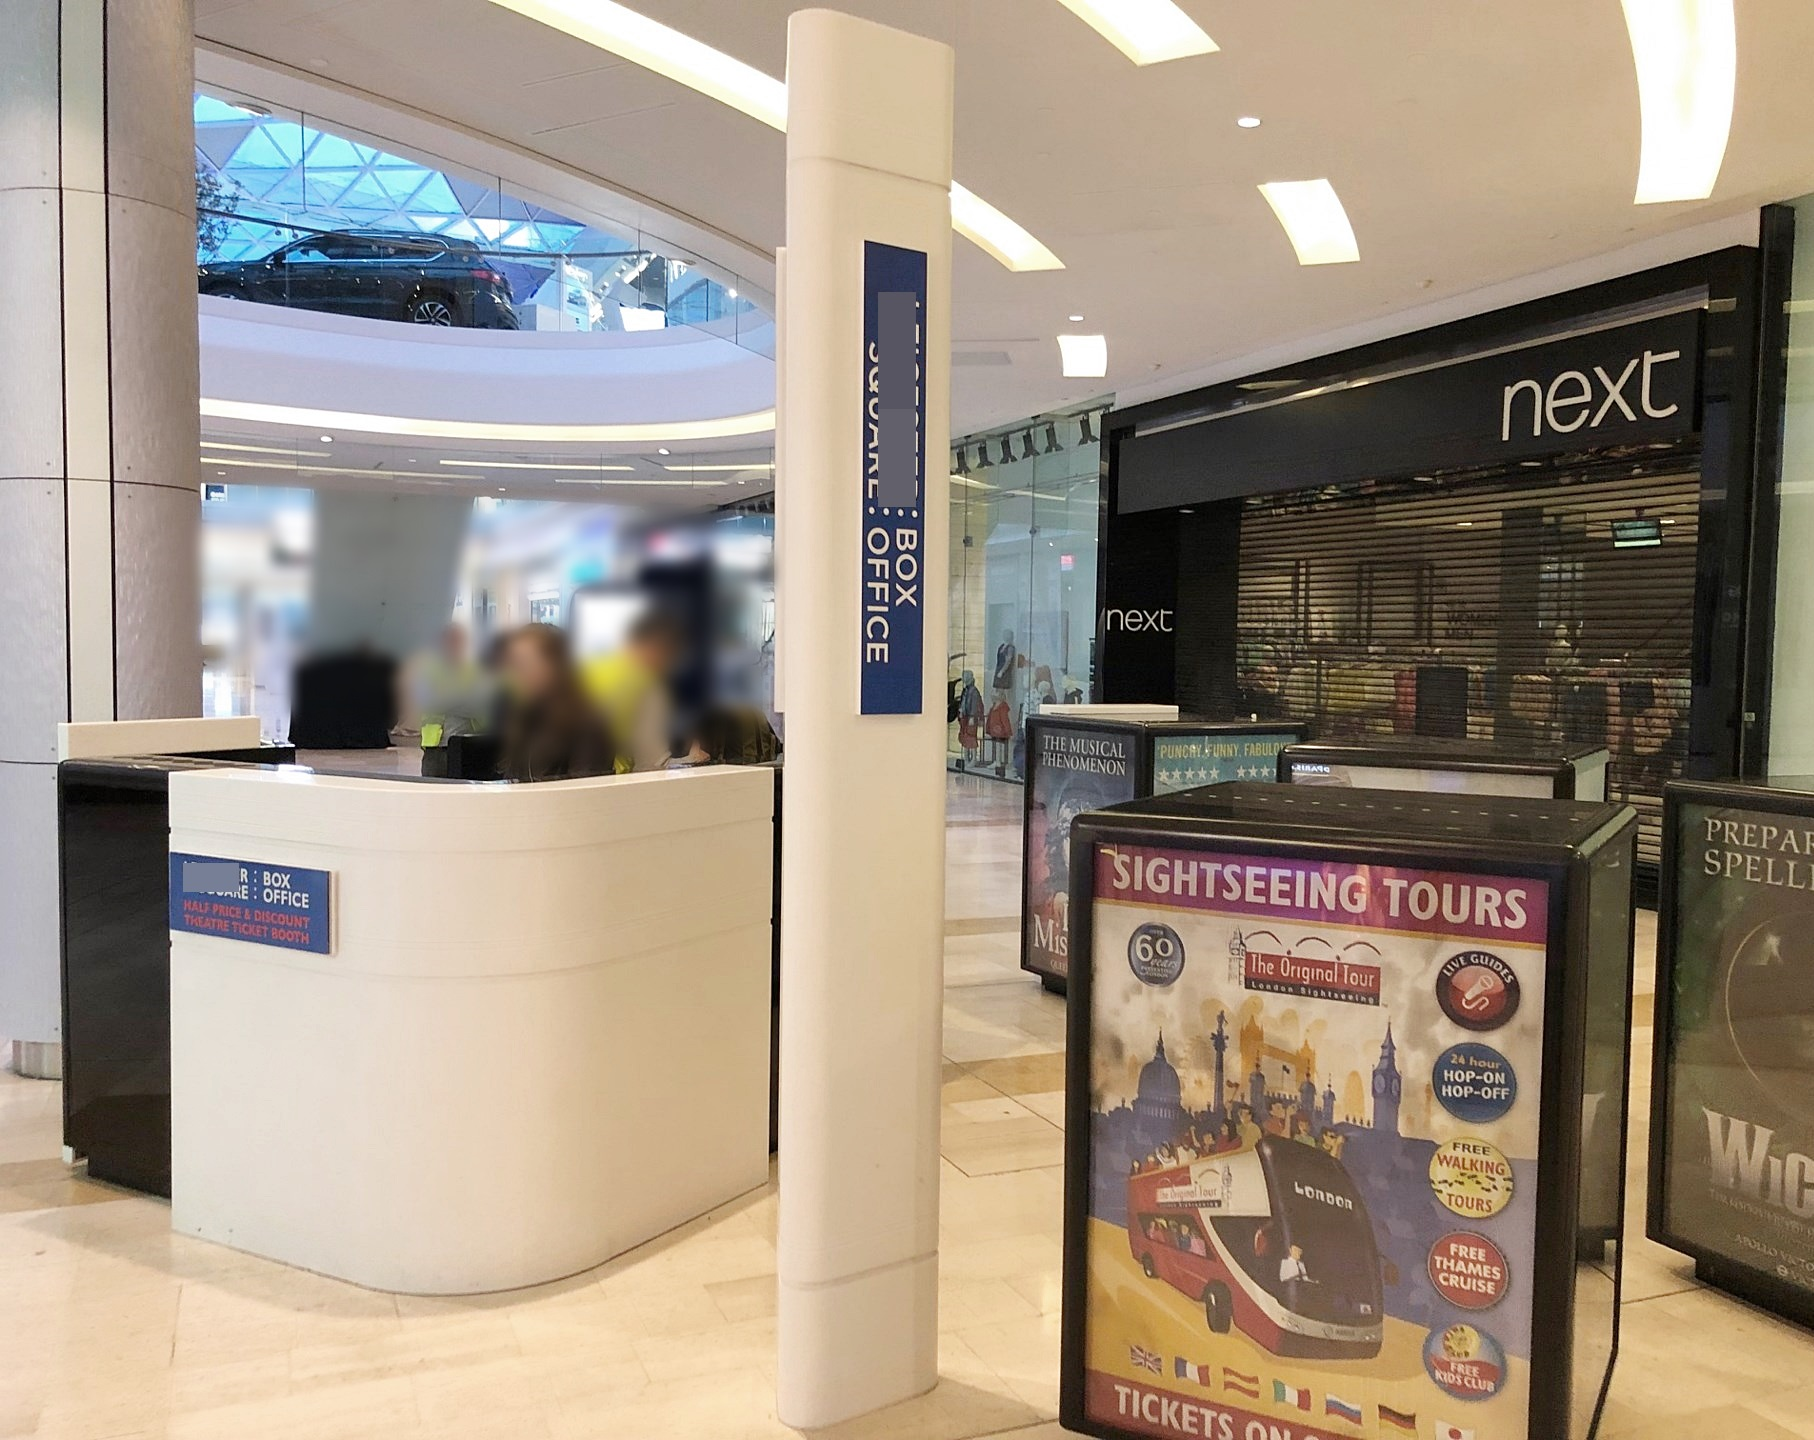 1 x Bespoke Resin / Corian Retail Kiosk / Counter + 4 x Advertising Display Cubes And 2.6 Totem Pole